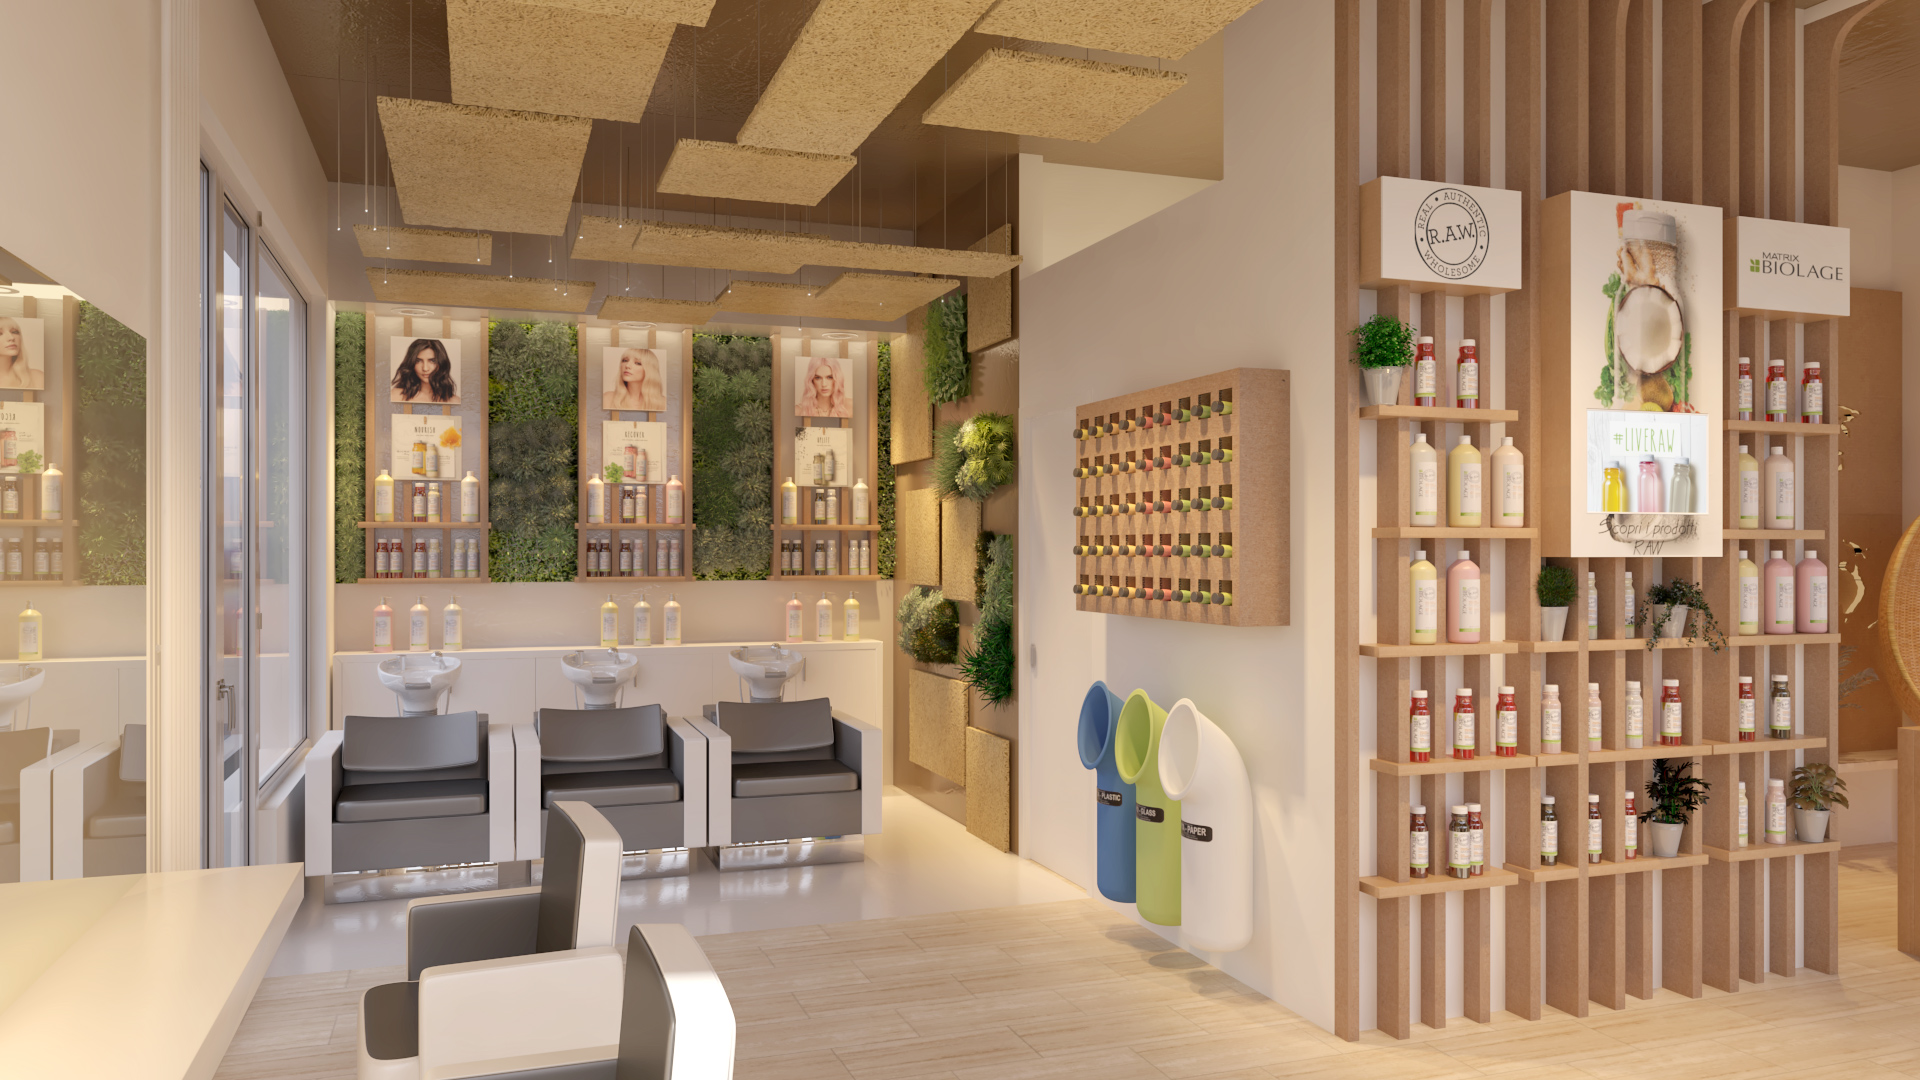 biolage raw popup store milano